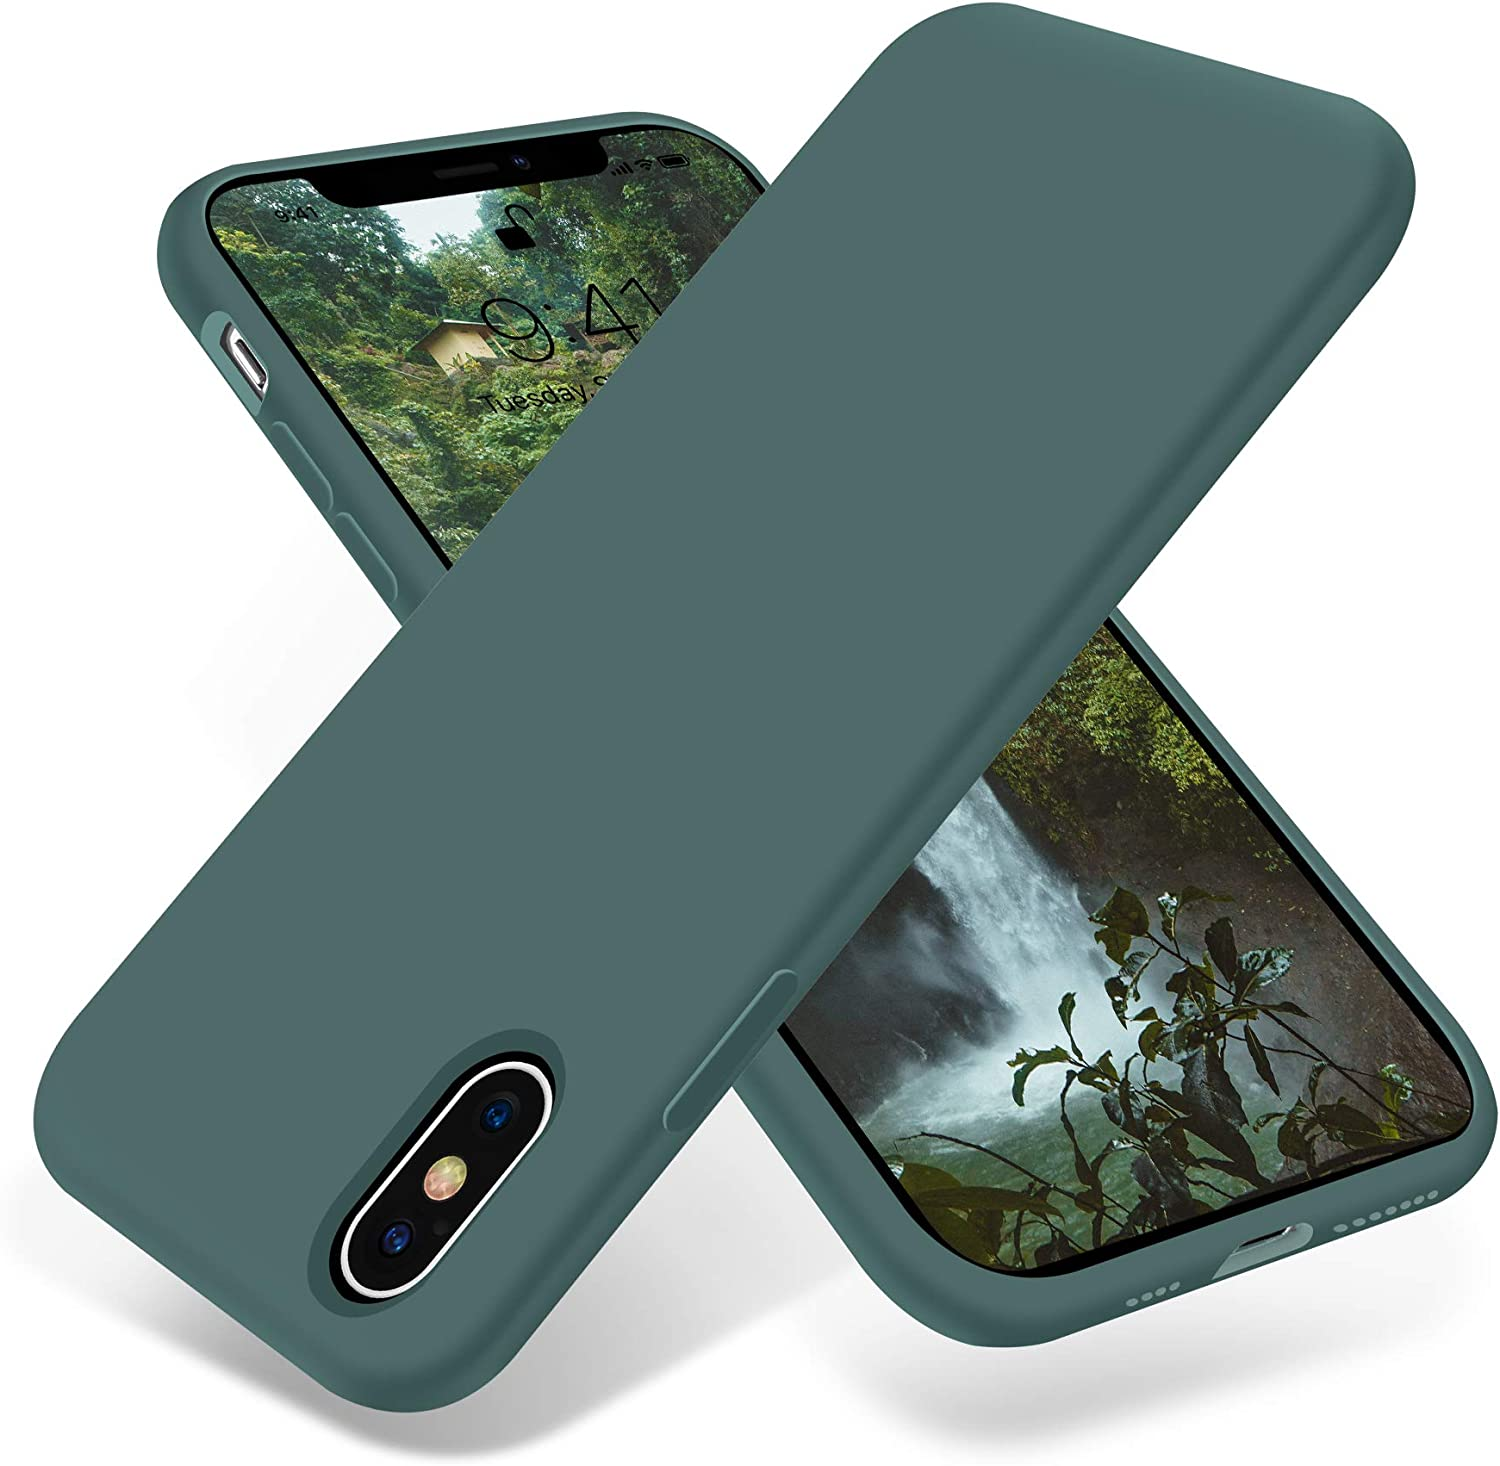 OTOFLY iPhone Xs Max Case,Ultra Slim Fit iPhone Case Liquid Silicone Gel Cover with Full Body Protection Anti-Scratch Shockproof Case Compatible with iPhone Xs Max, [Upgraded Version] (Pine Green)